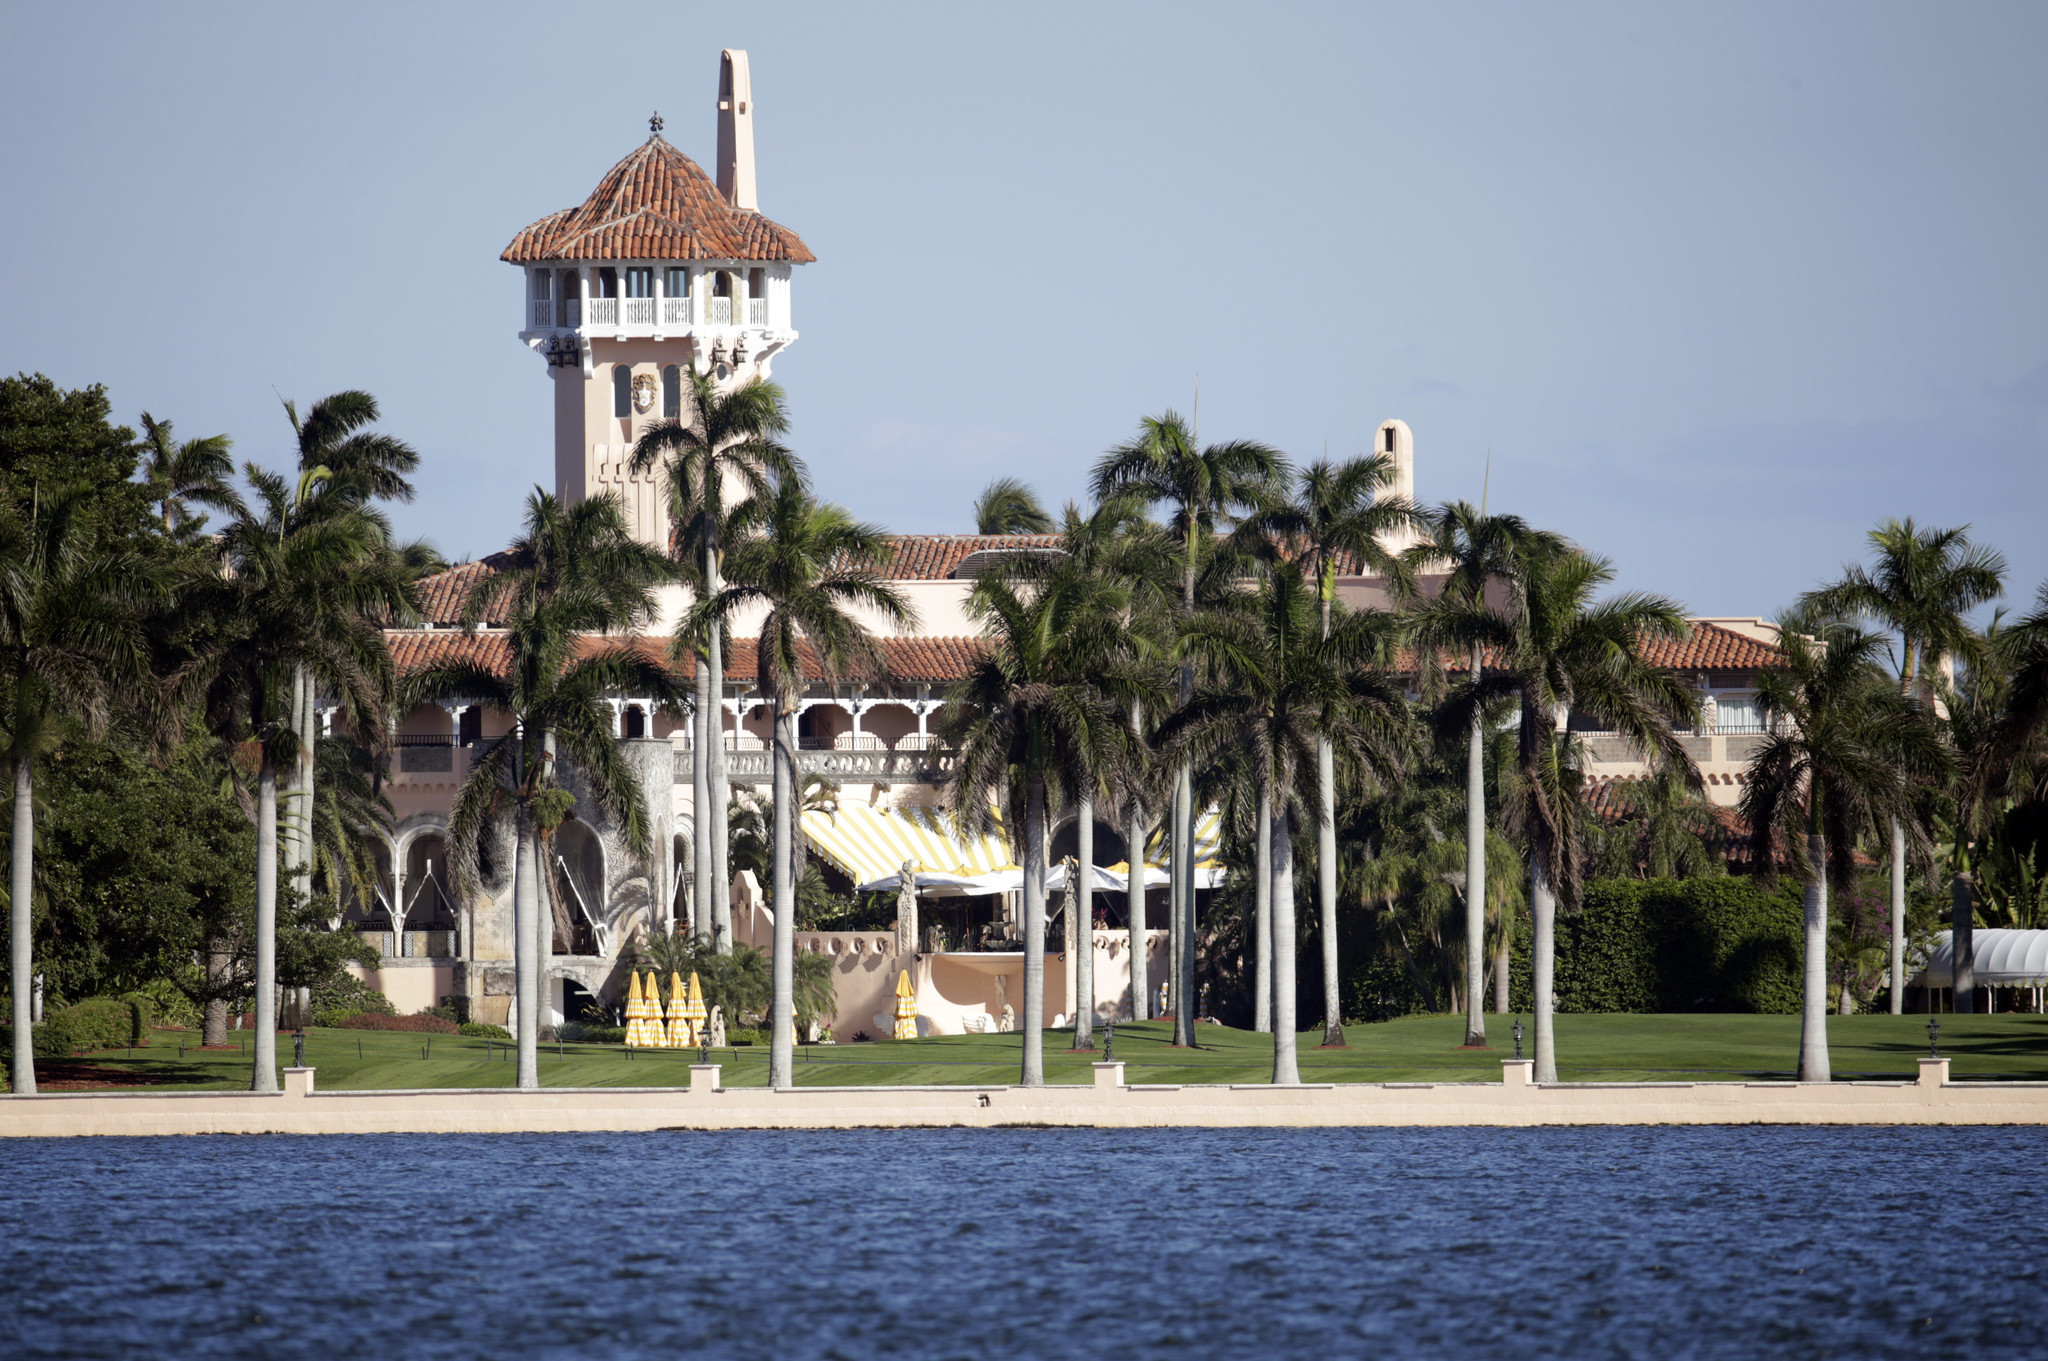 More groups ditch plans for fundraisers at Mar-A-Lago